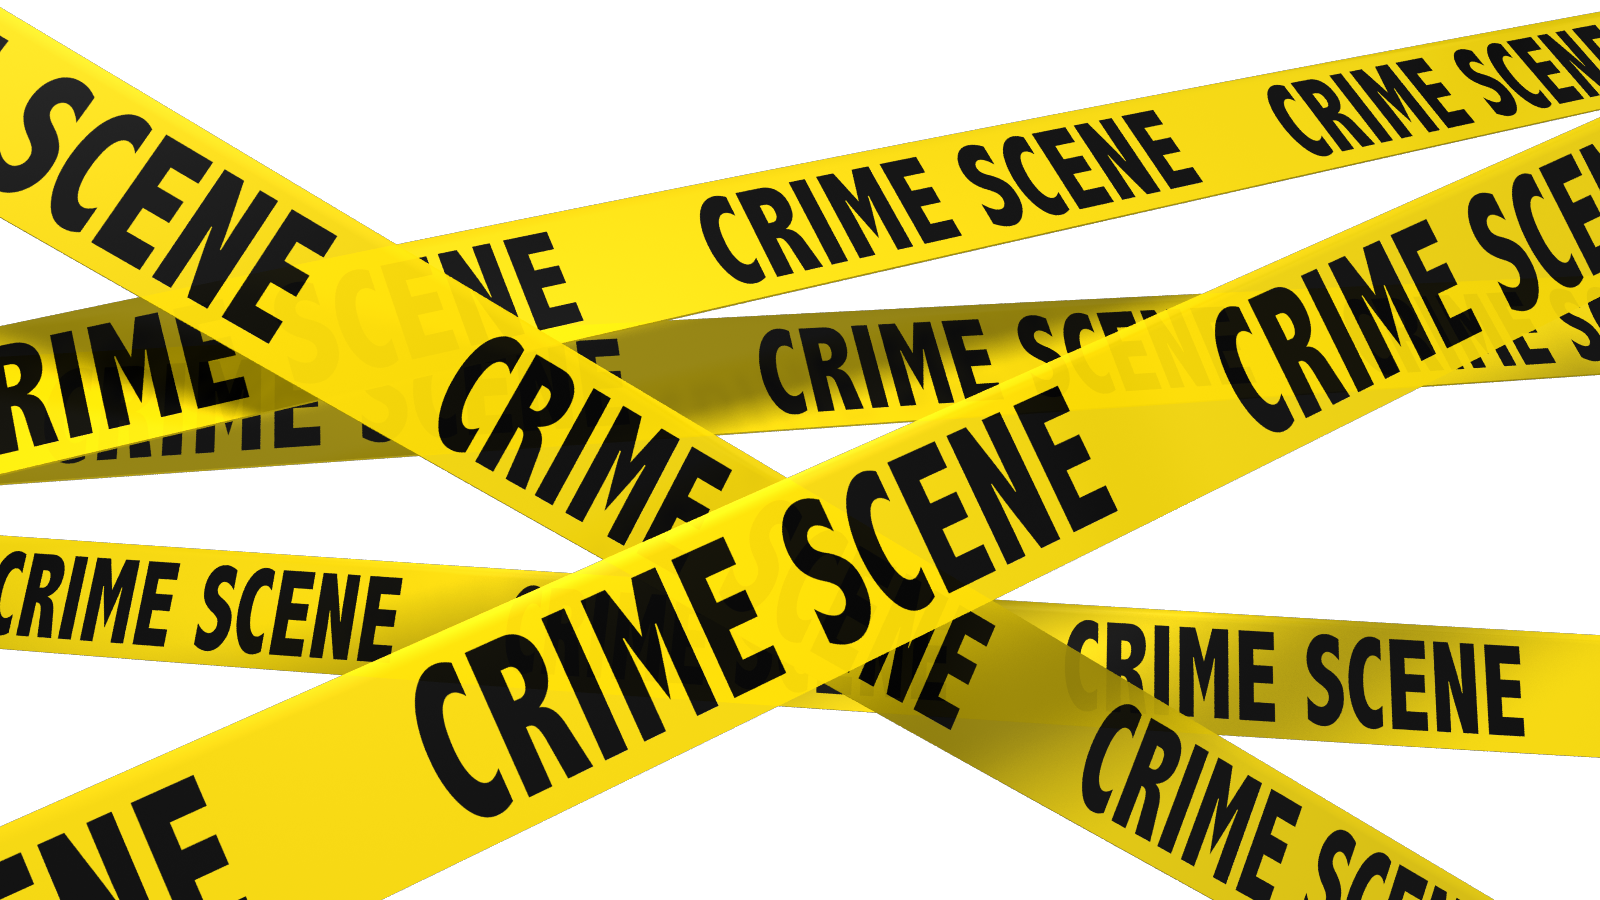 Csi Crime Scene Investigation Clipart.